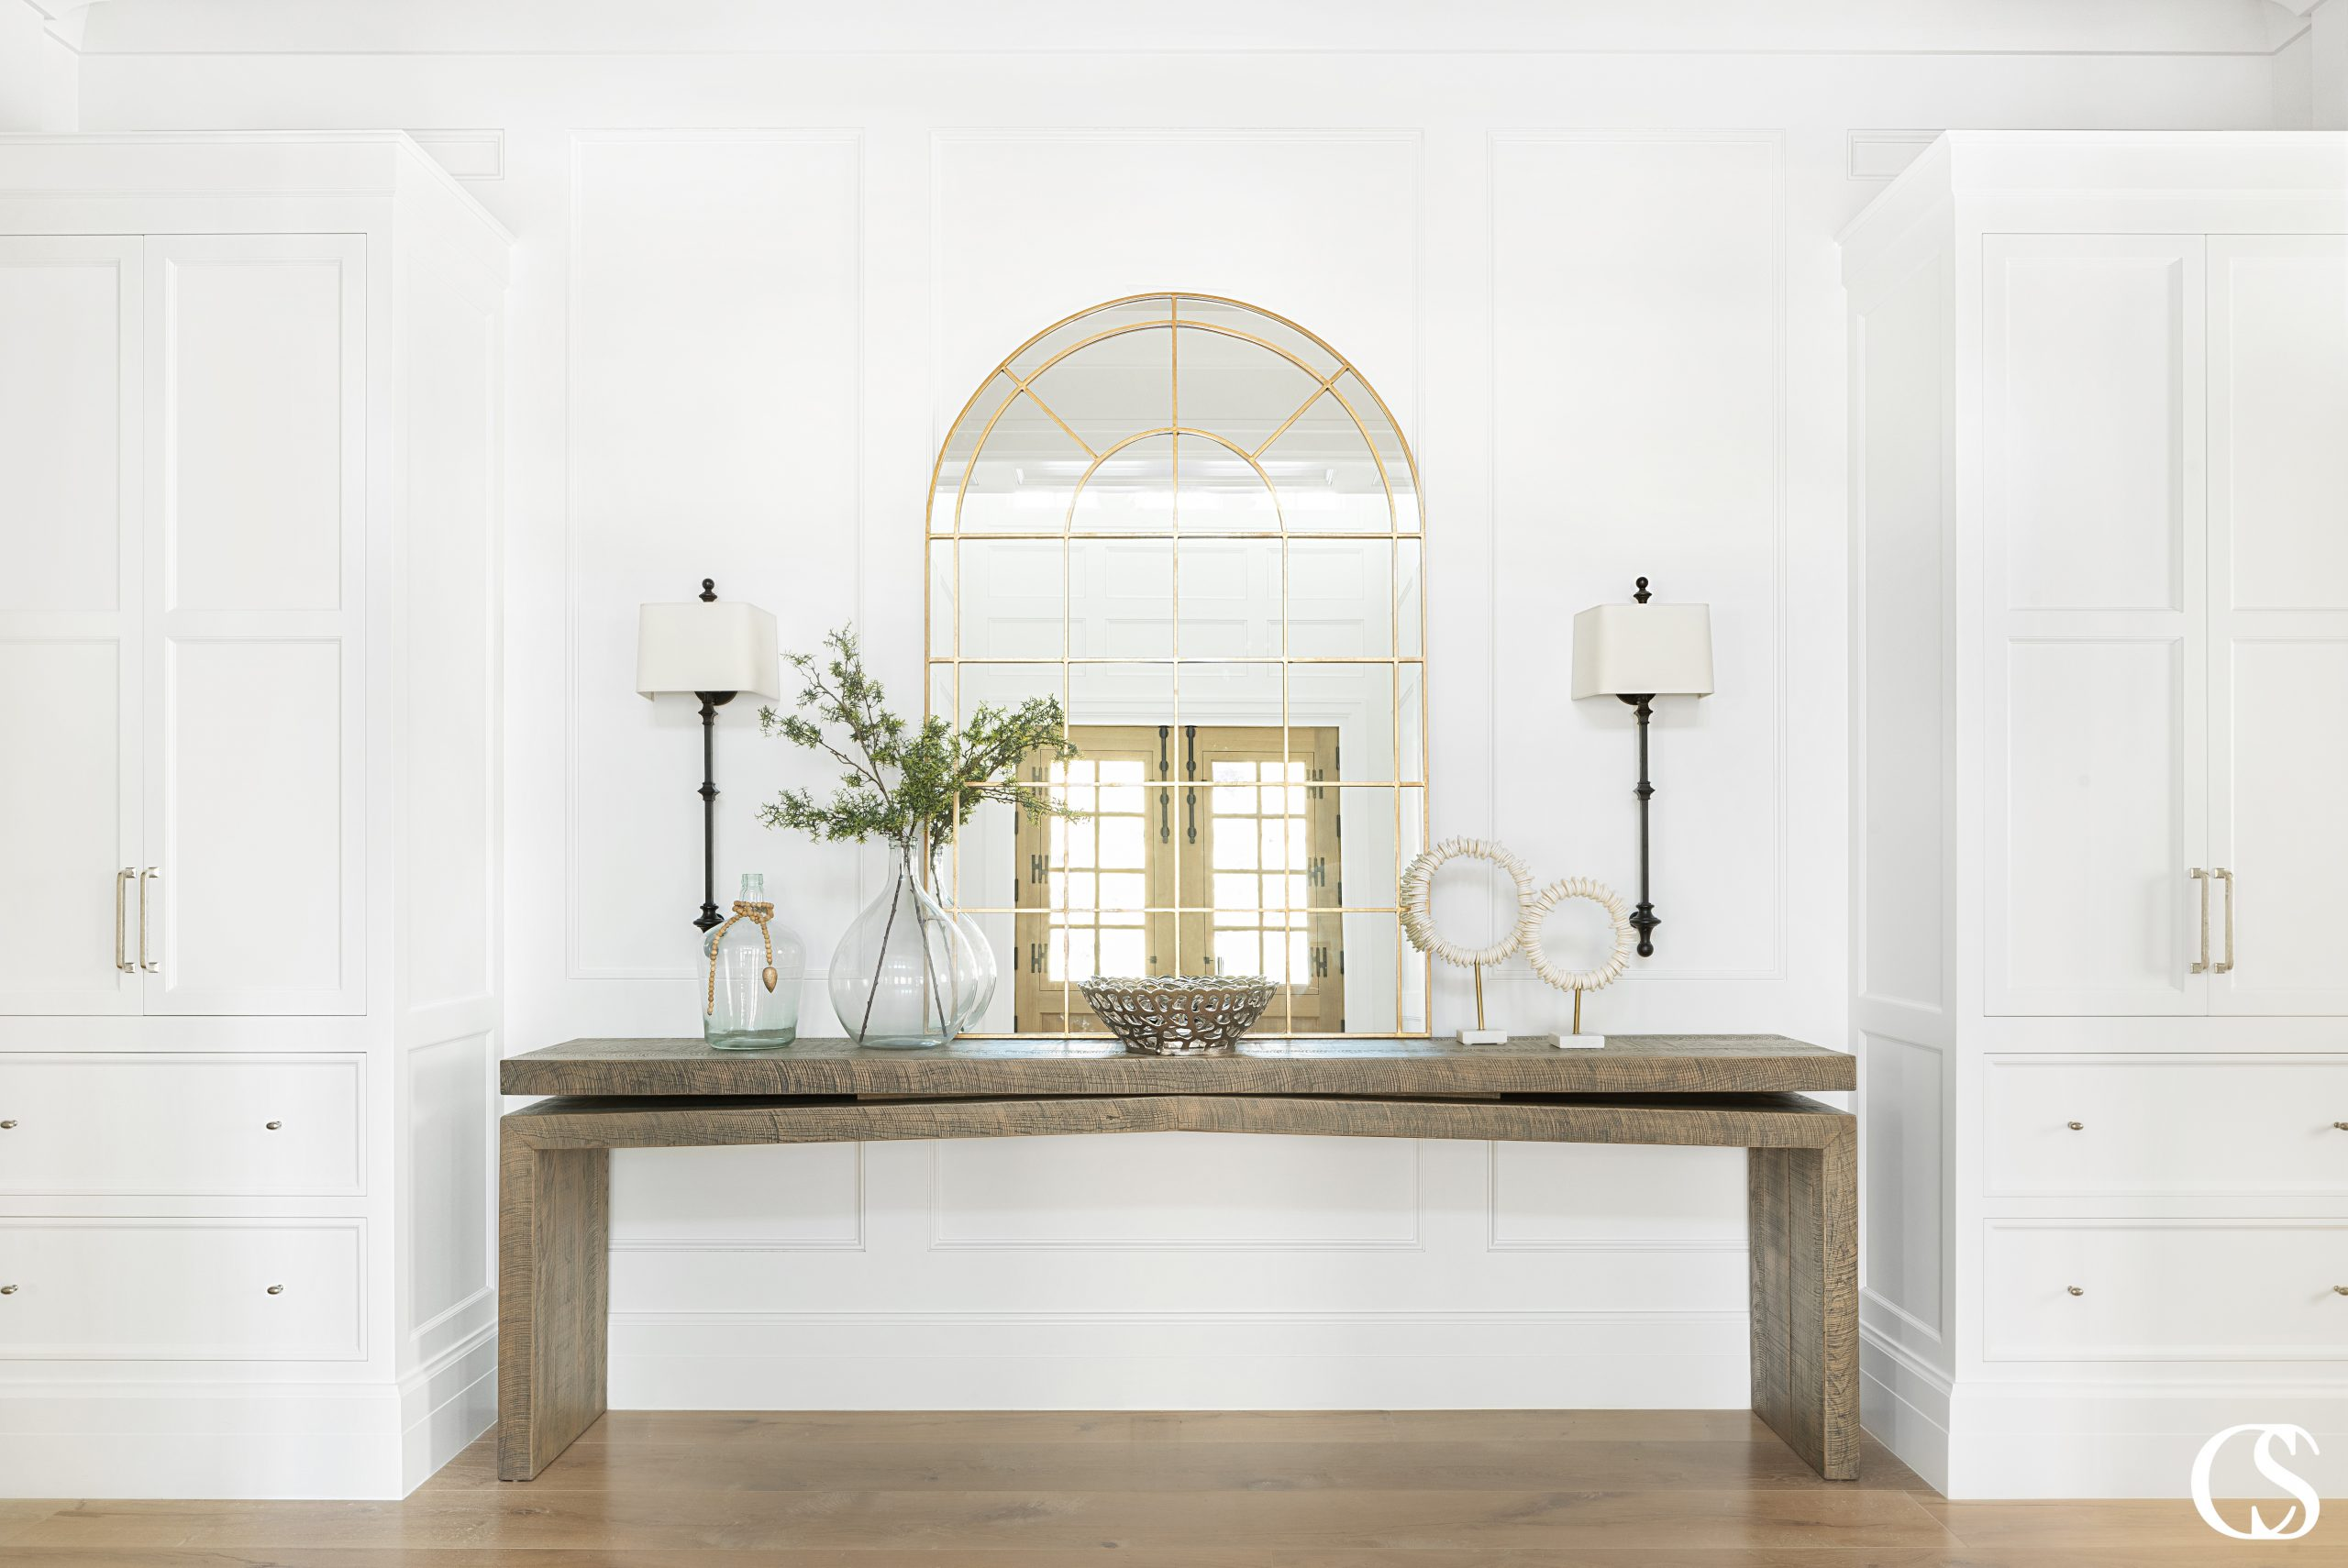 Technically, there's an infinite amount of styles and I am constantly surprised by the number of ways custom designers can find to make every cabinet and home feel perfectly unique—like with these custom cabinets for the home entry.